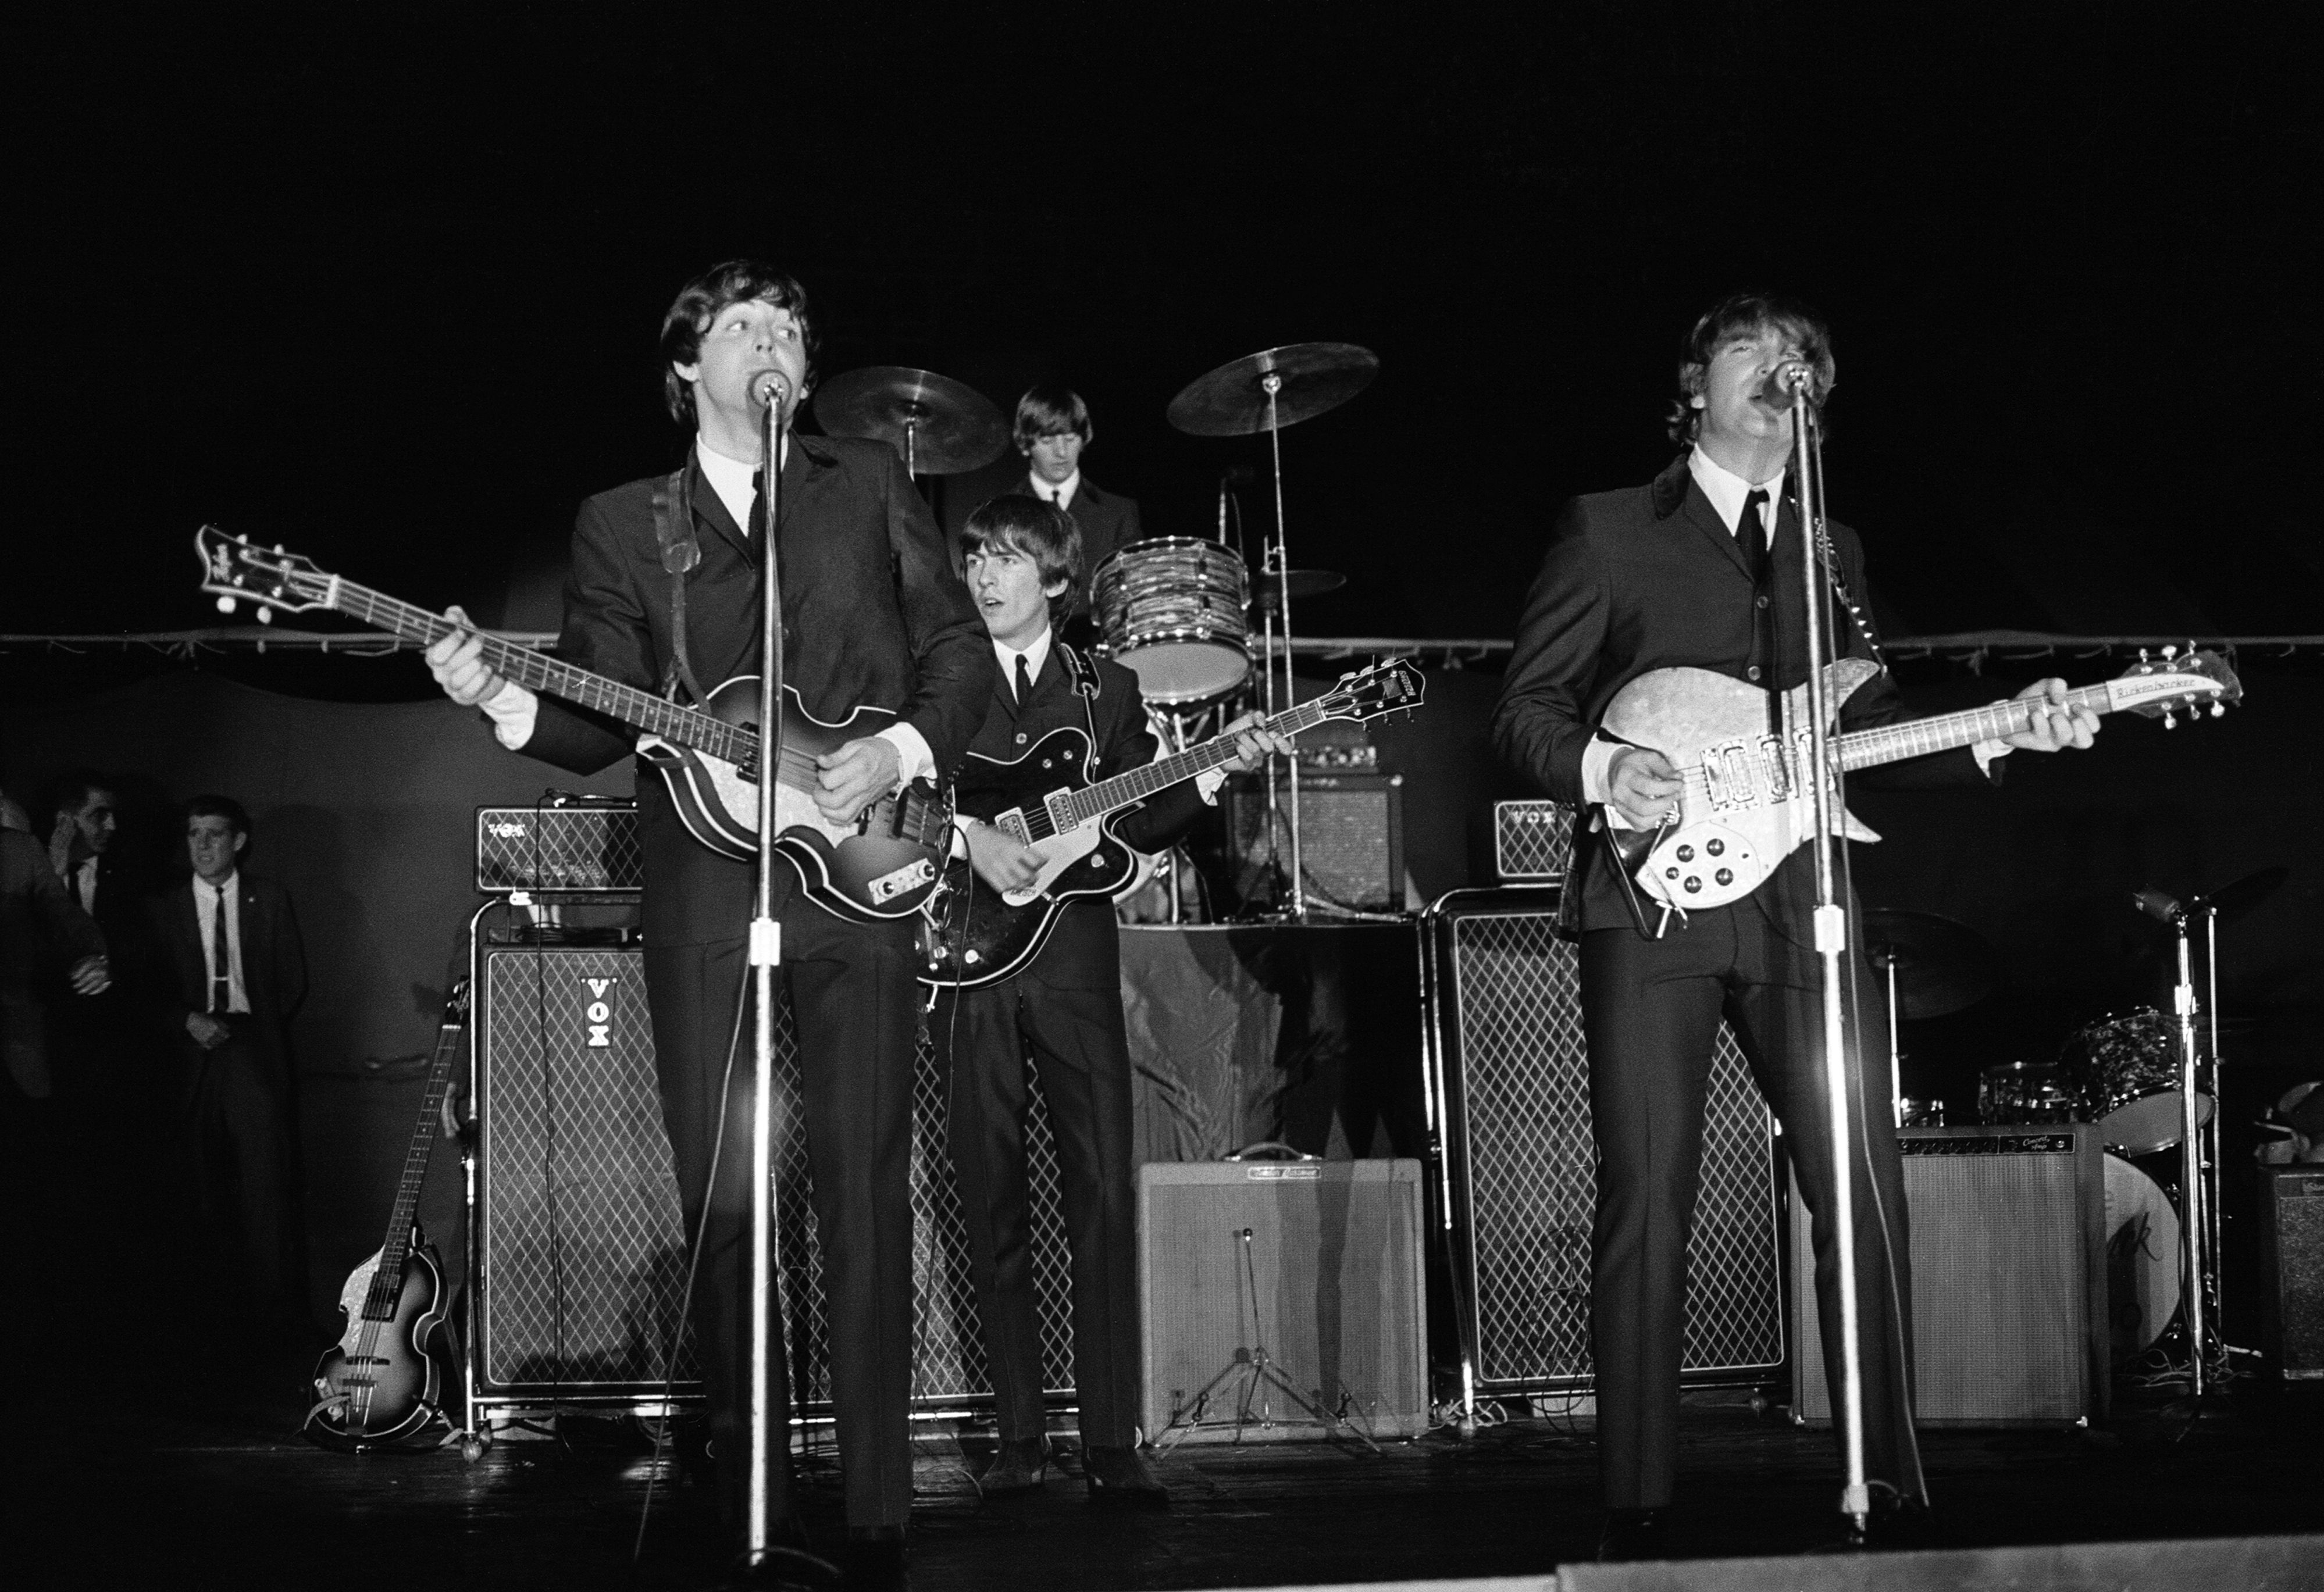 The Beatles 1964 Summer Tour Of United States And Canada Performing On Stage At Forest Hills Tennis Stadium In New York During